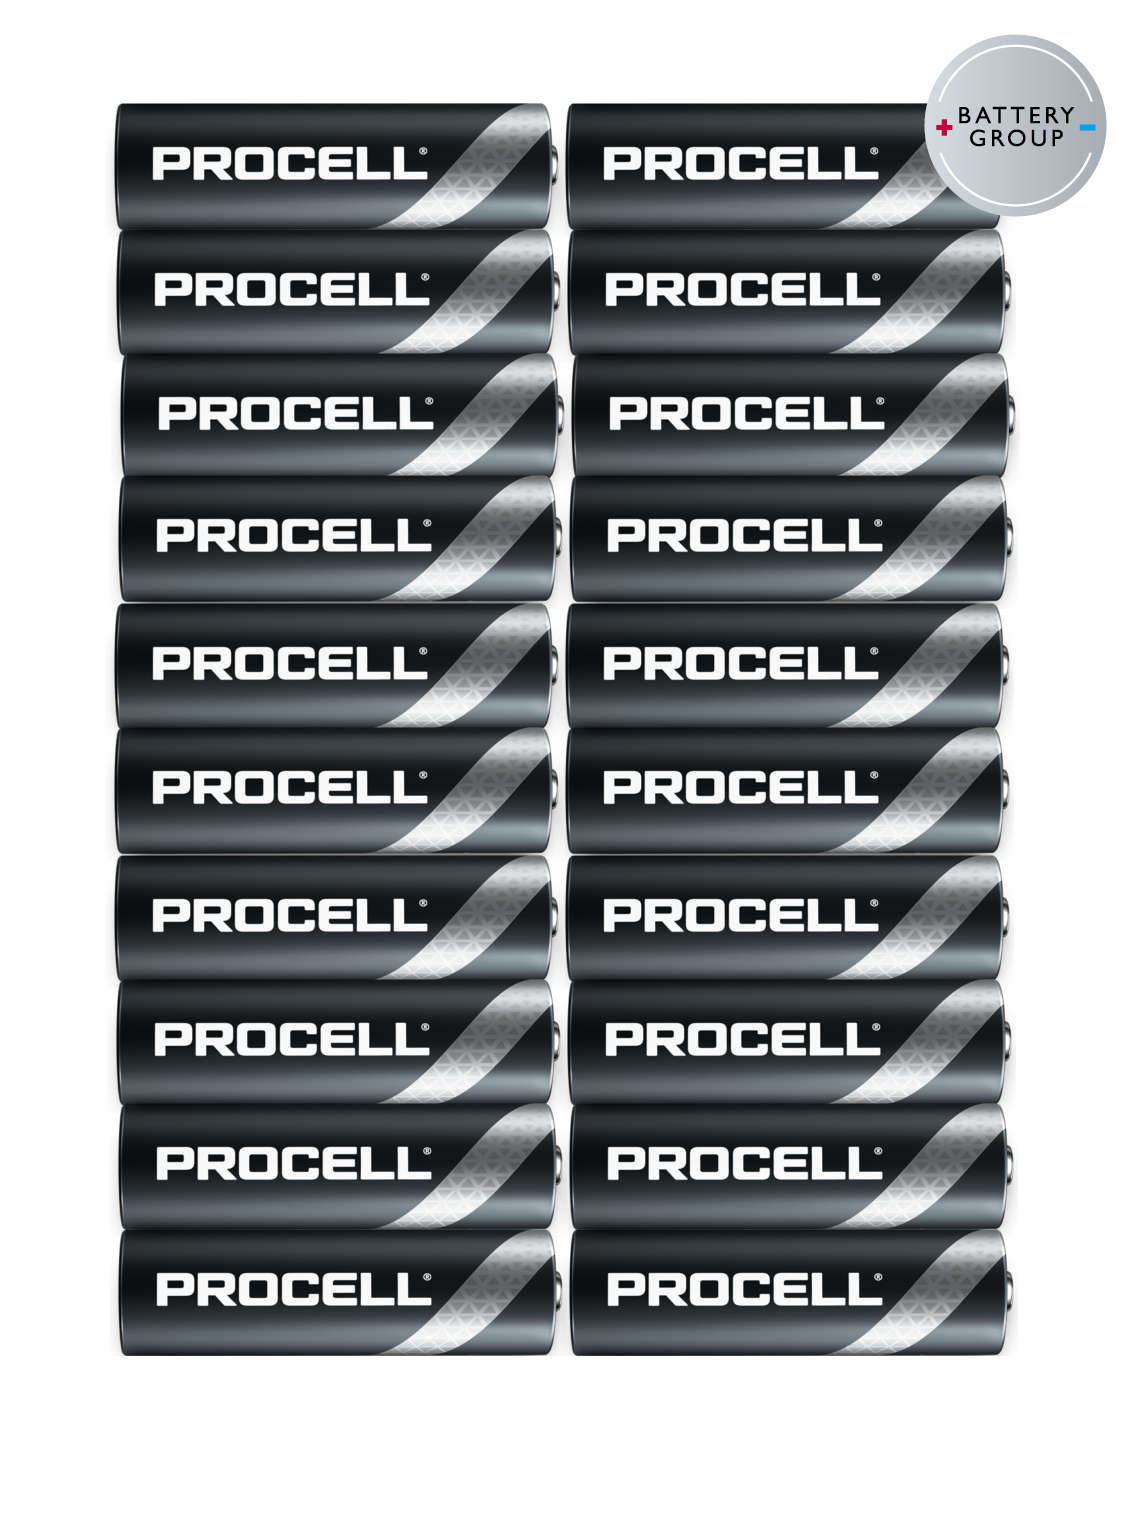 20 Pack Duracell Industrial NOW PROCELL AA Batteries Alkaline MN1500 Exp 2026 3